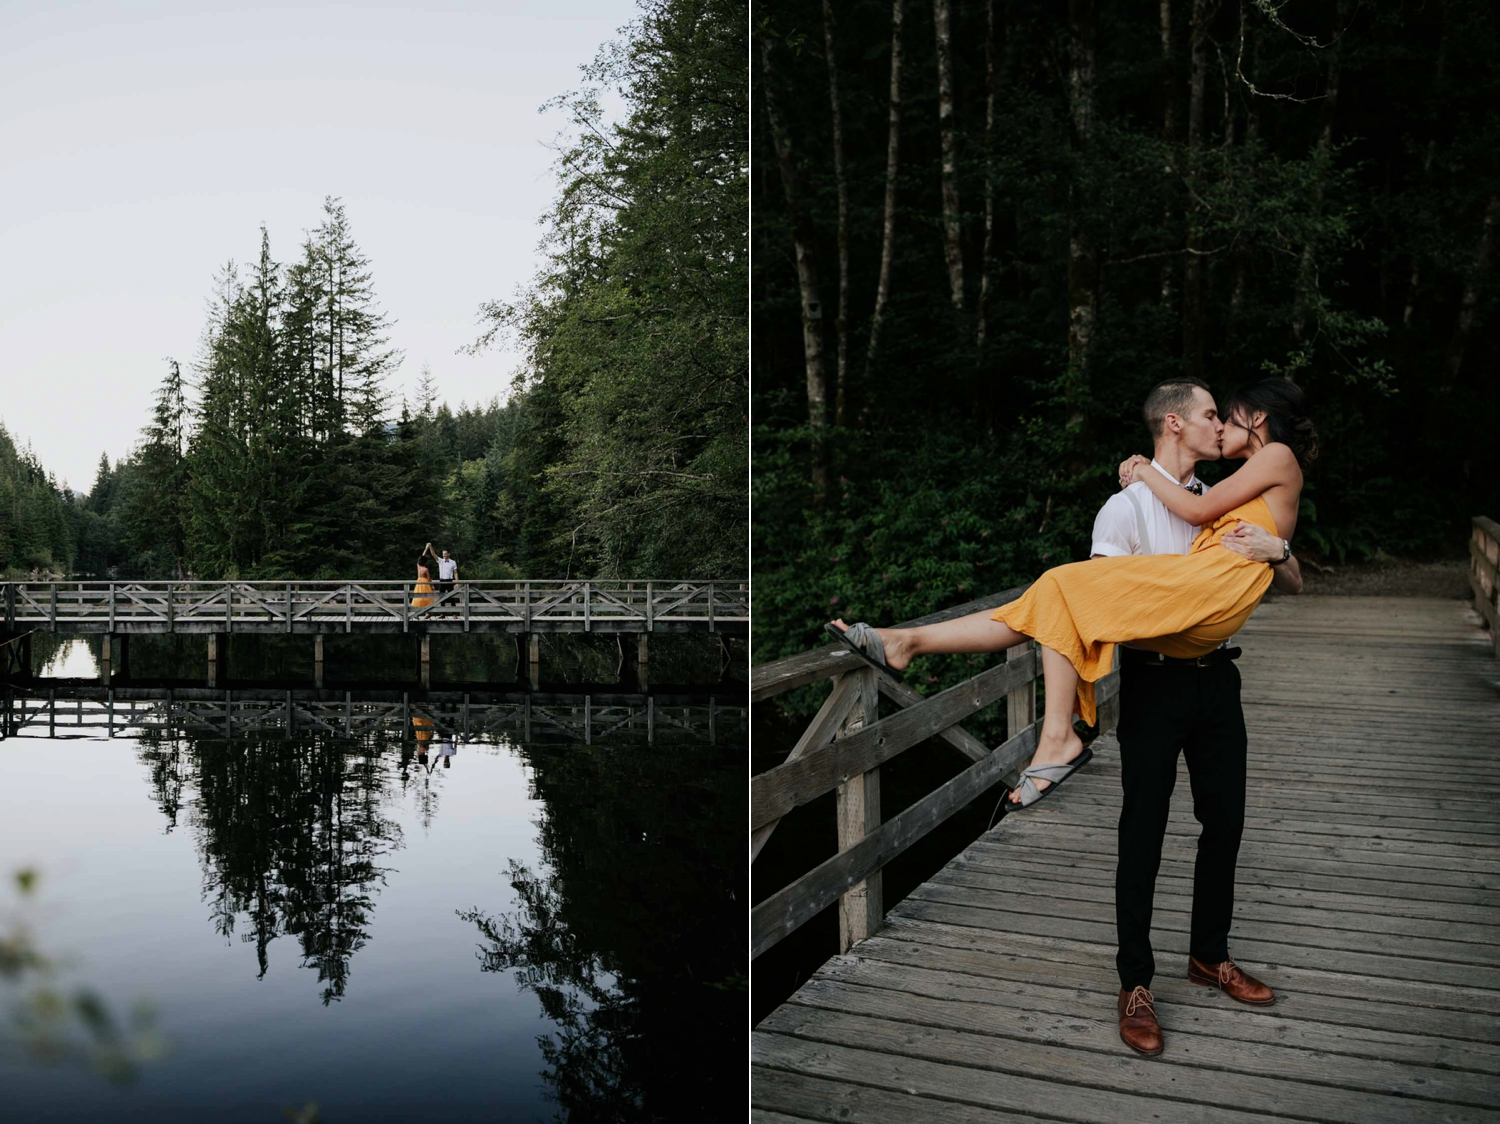 Couple dancing together on a bridge at Rice Lake, Vancouver.